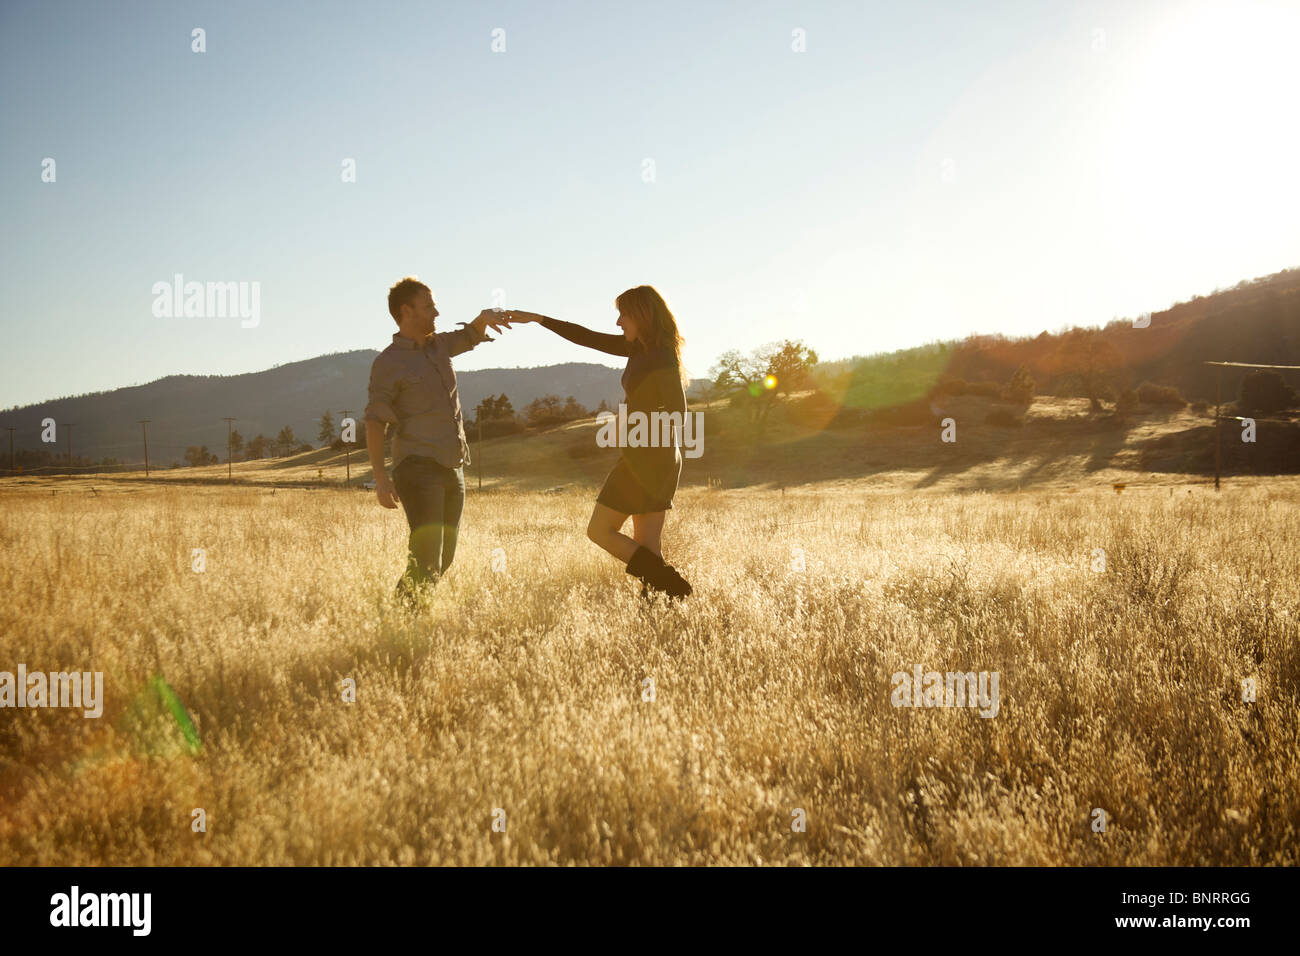 Happy couple dancing in an open field. - Stock Image